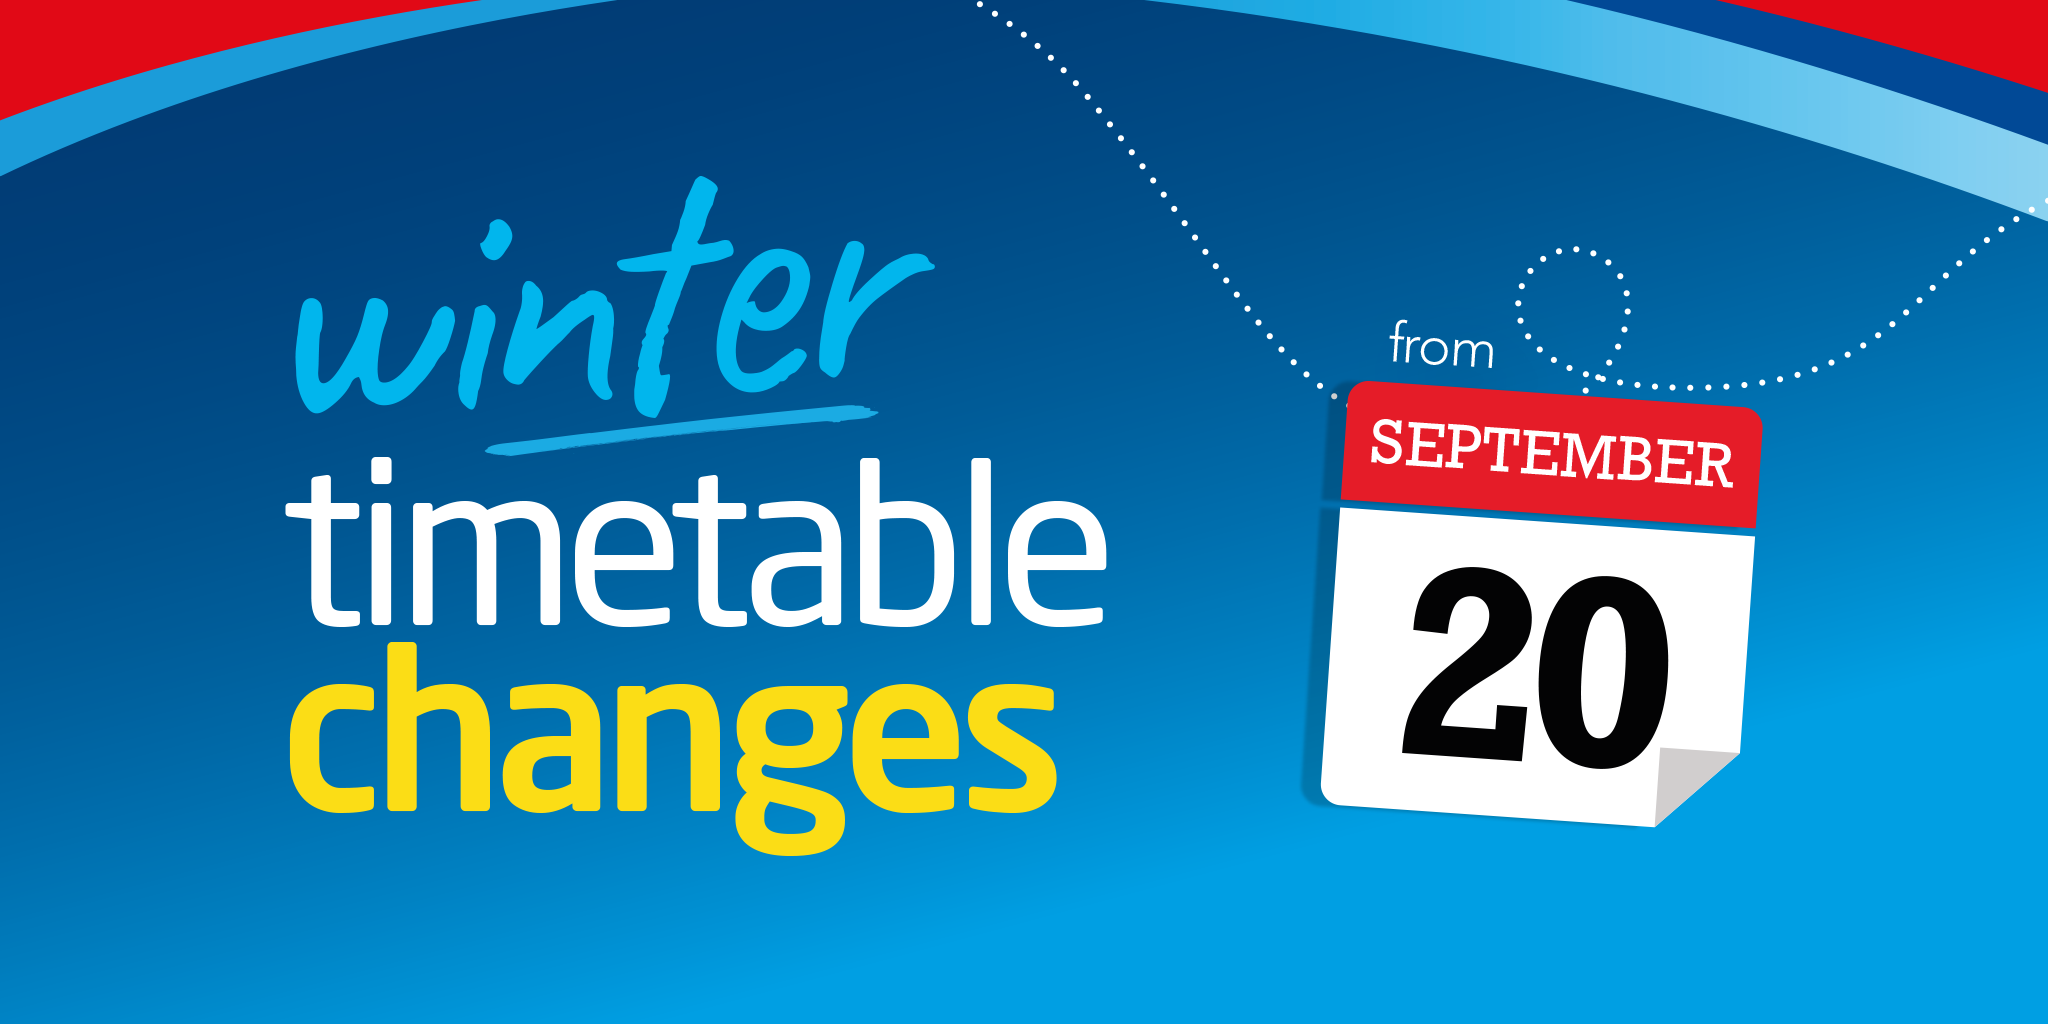 Image with text saying 'winter timetable changes from 20th September'